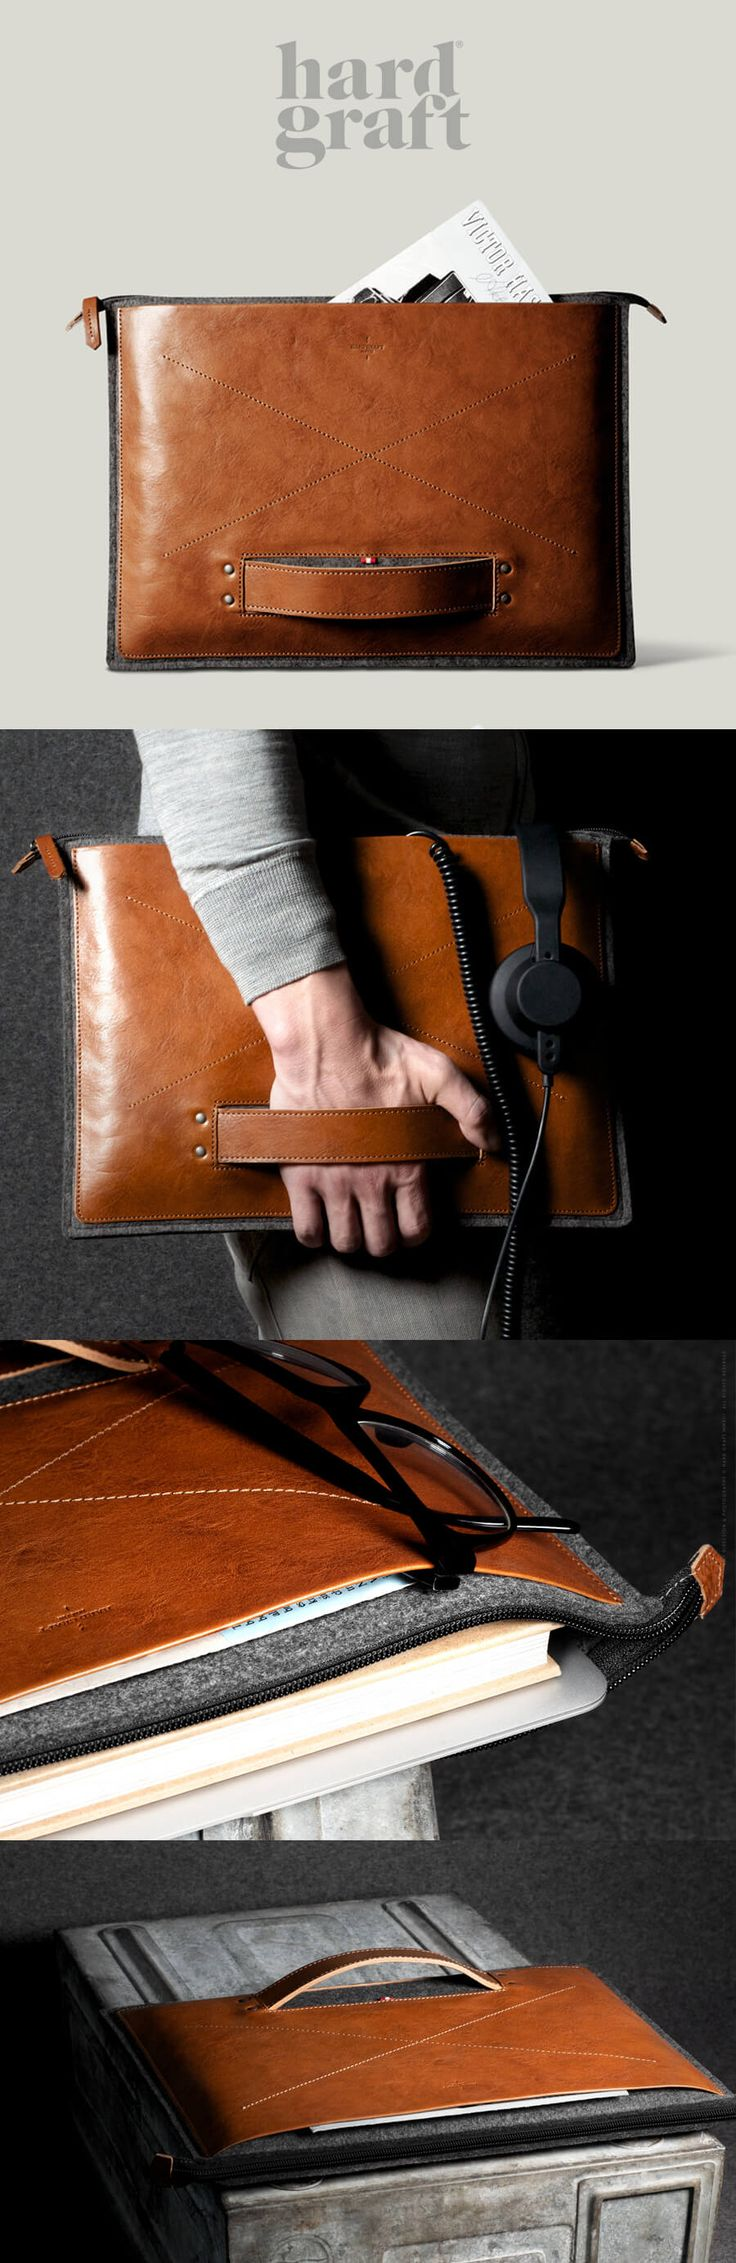 The Grab Laptop Folio by @hardgraft is worth buying on looks alone. Add to that these features and how could you not buy it. Features include: Fits a range of MacBooks, as well as many tablets | Pure German Wool Felt (3mm) to protect from bumps and scratches | Extra large leather pocket on the outside for cables, iphone, thin books | Iconic Grab Handle | Scratch free nylon Zipper Closure | Handmade in Italy | Über Premium Vegetable Tanned Italian Leather |  #nattyguy #spon